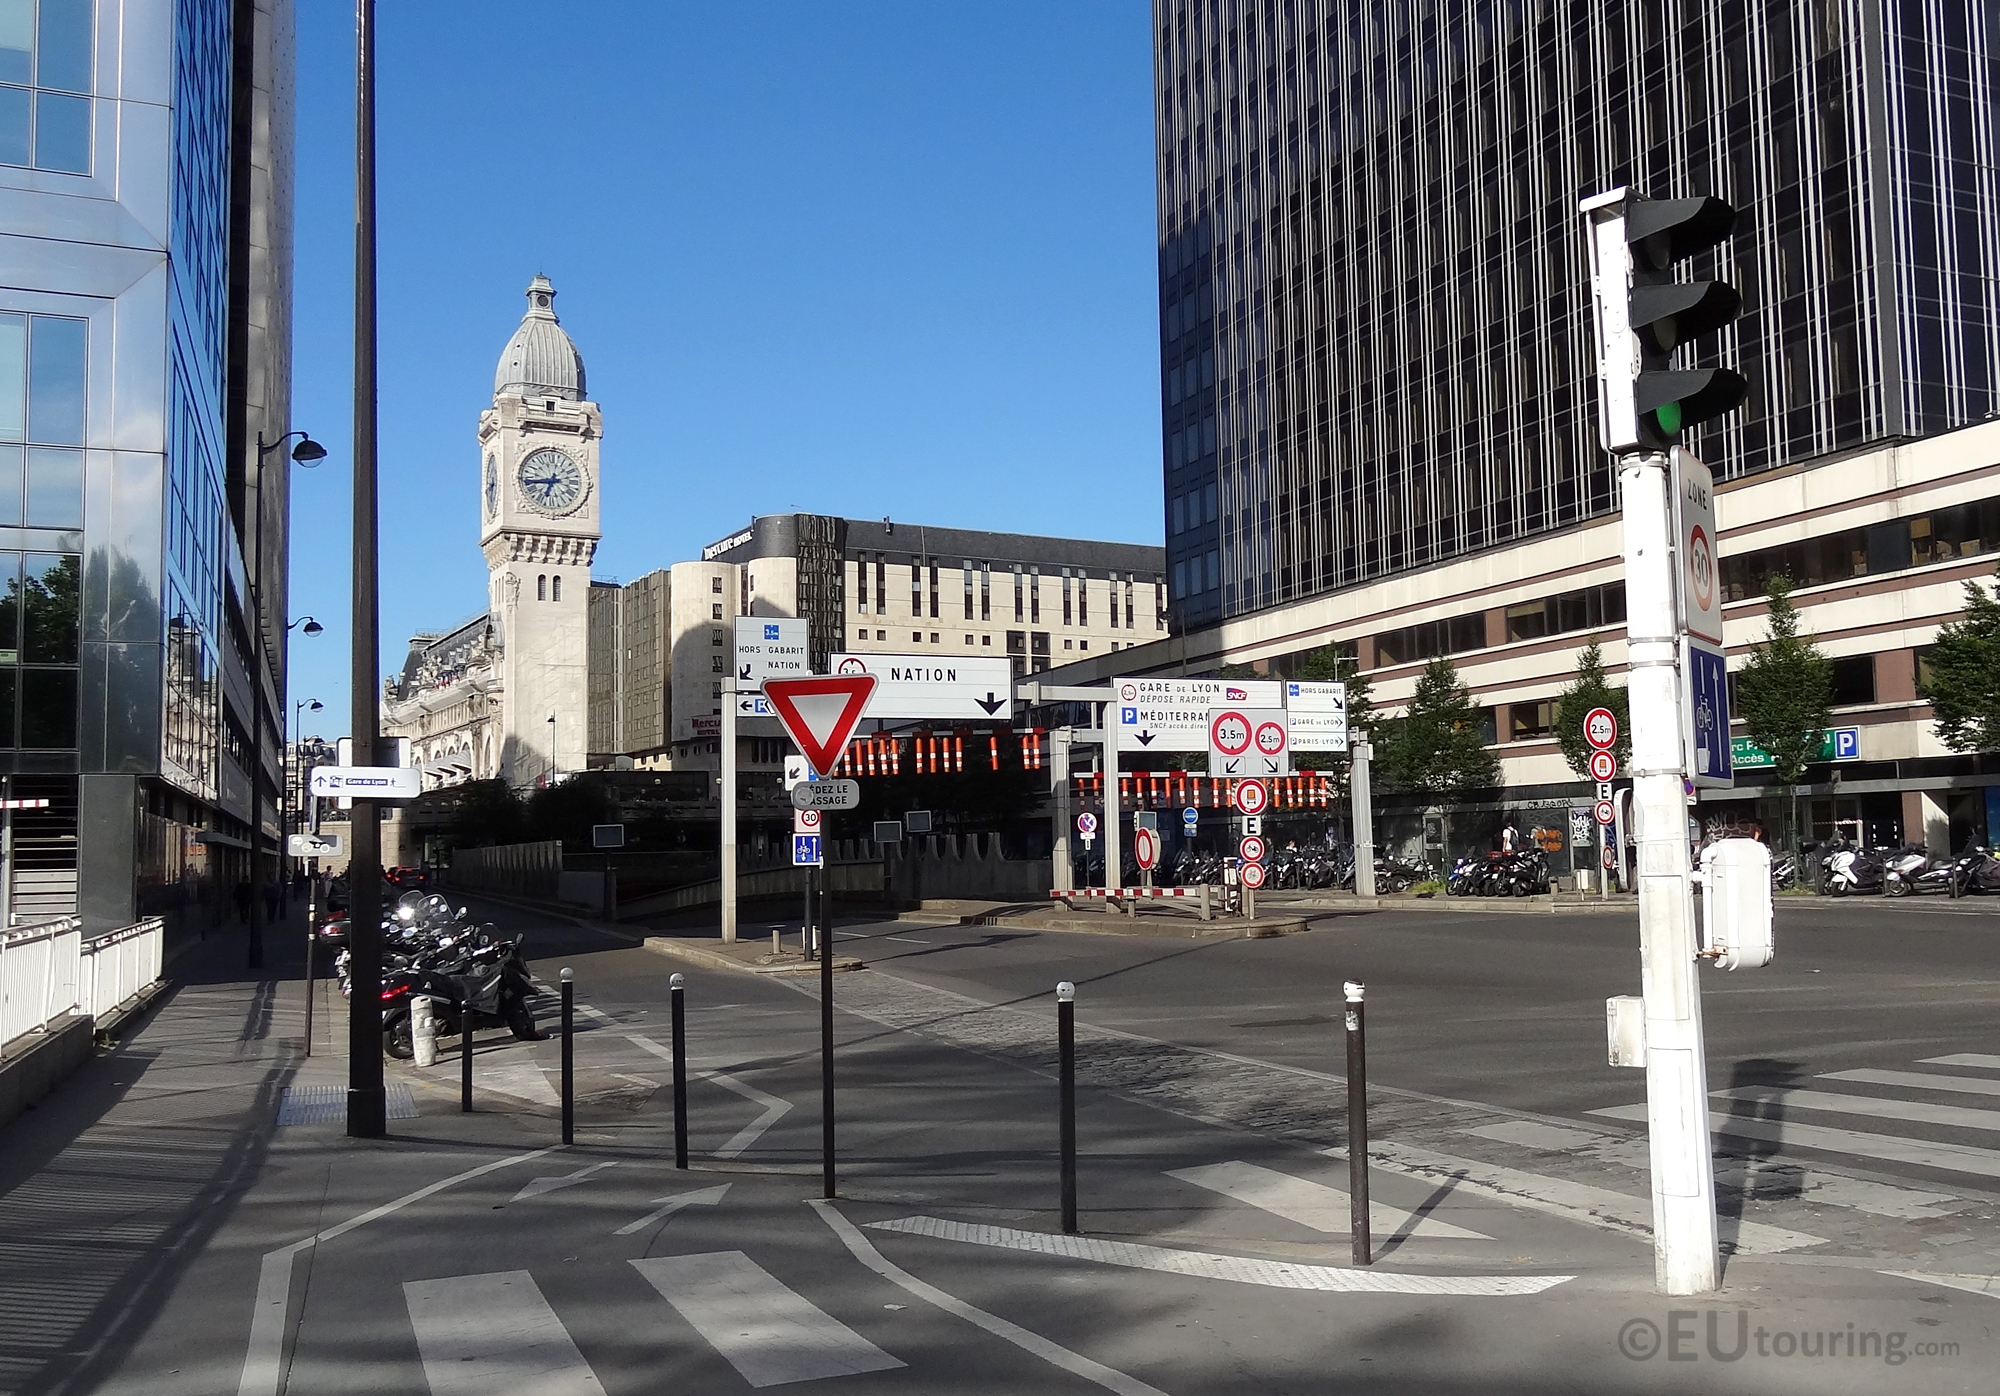 Rue van Gogh and Gare de Lyon